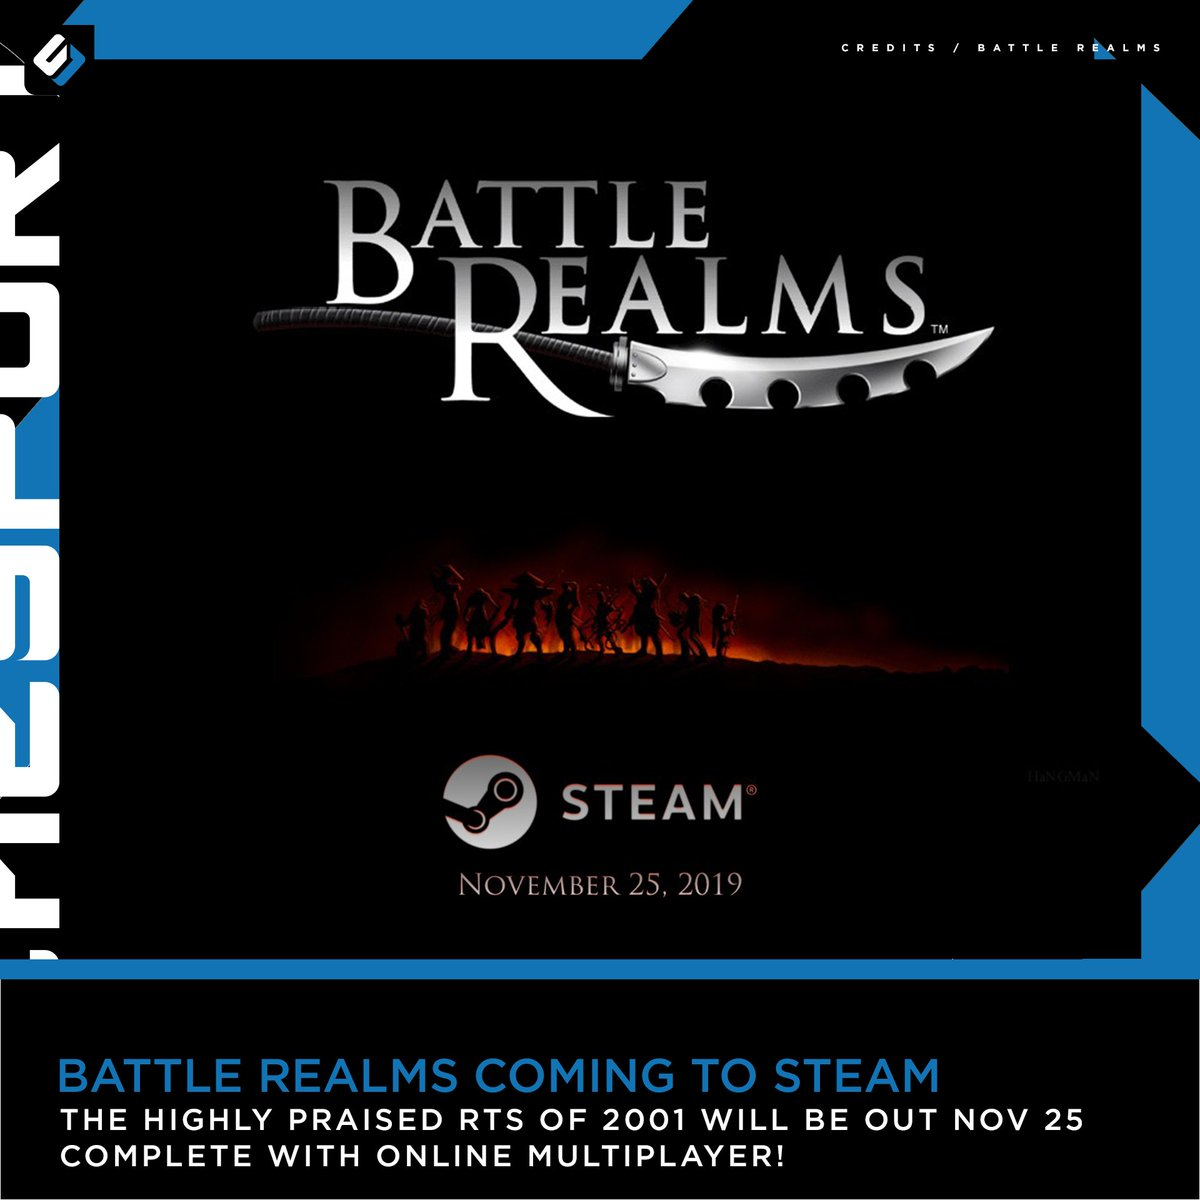 This is not a #FlashbackFriday #BattleRealms will be up on Steam as an early access title complete with multiplayer support! <br>http://pic.twitter.com/VRWXsxWetj